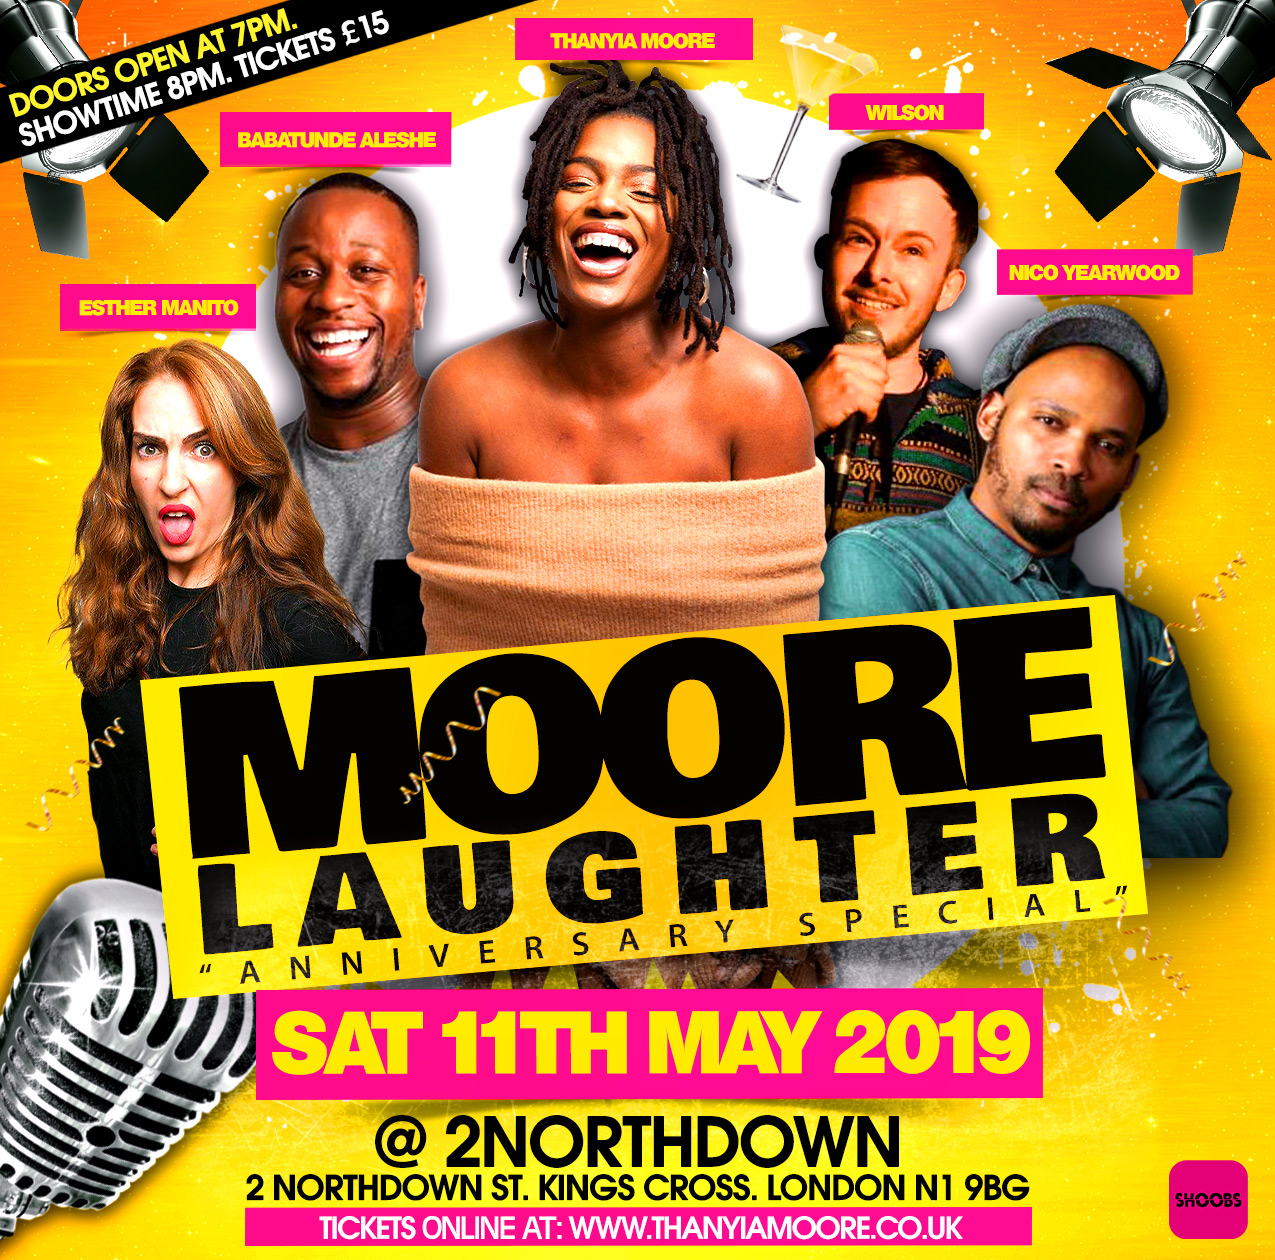 Moore Laughter - Anniversary Edition